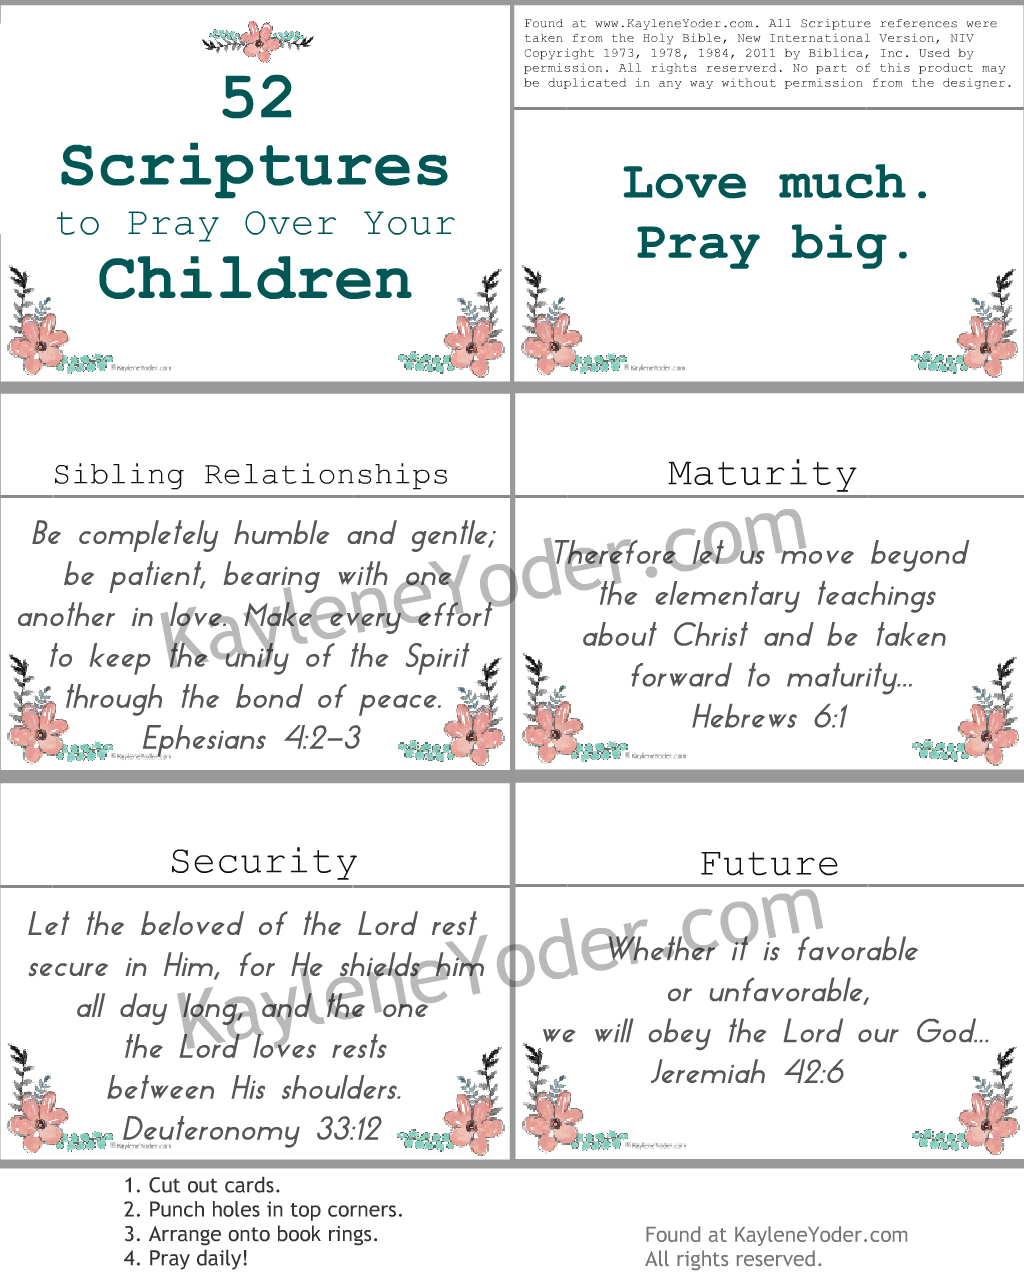 Scripture Prayer Cards to Pray Over Children 9 with LOGO